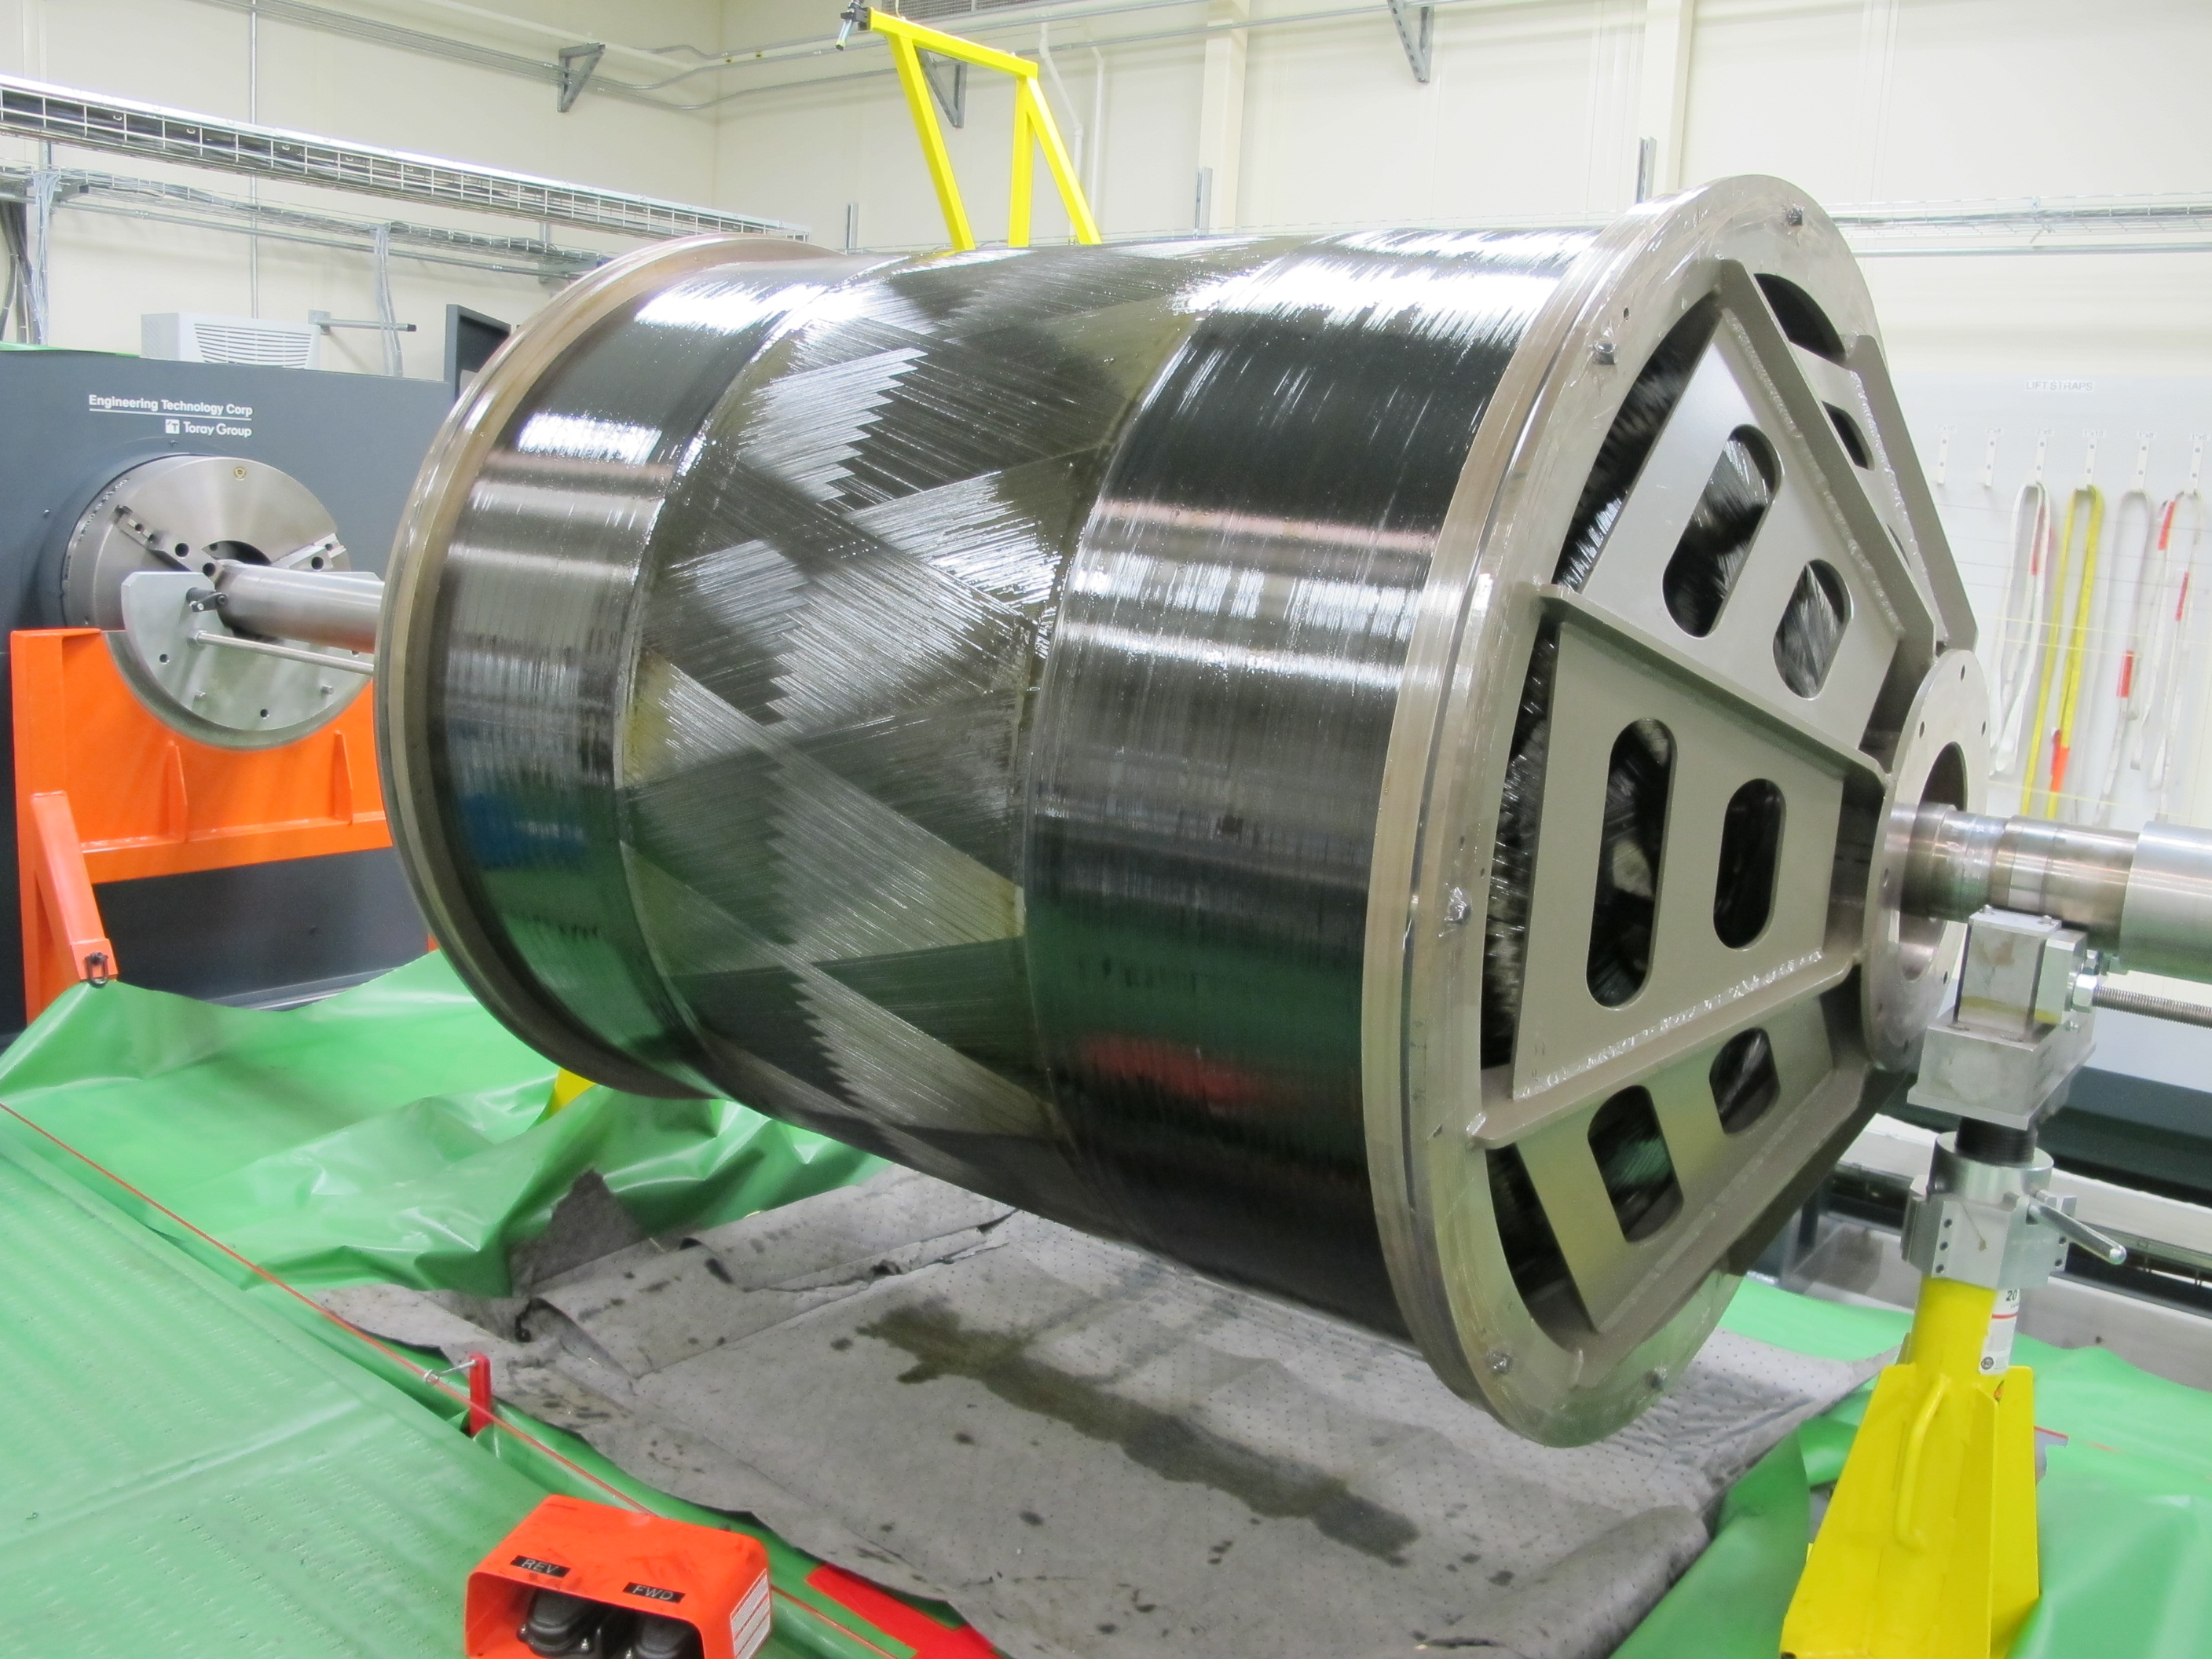 Aerojet Rocketdyne Large Solid Motor Carbon Fiber Case Example